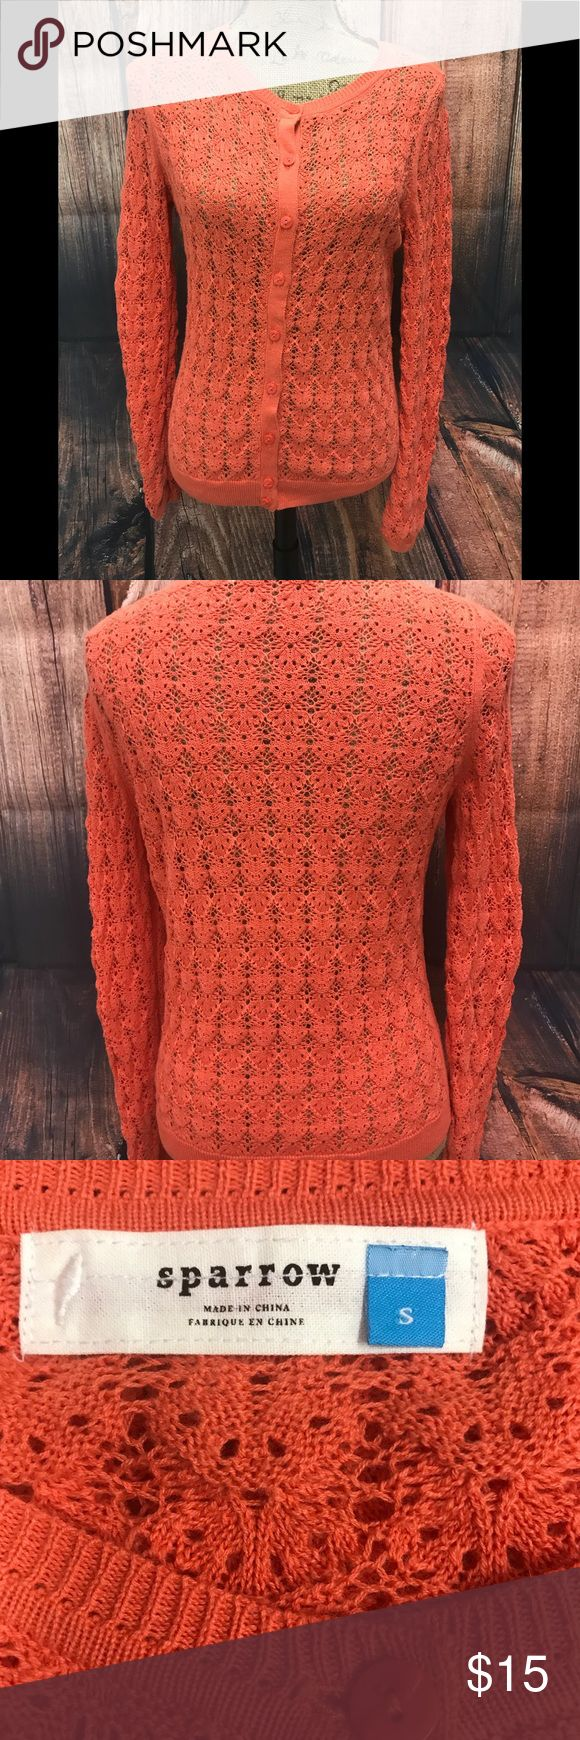 "Anthropologie sparrow size small sweater Anthropologie size small button down sweater measurements are app laying flat armpit to armpit 19"" double for true fit length is 27"" sleeves is 26"" faded orange color preworn condition no rips stains or tears Anthropologie Sweaters"